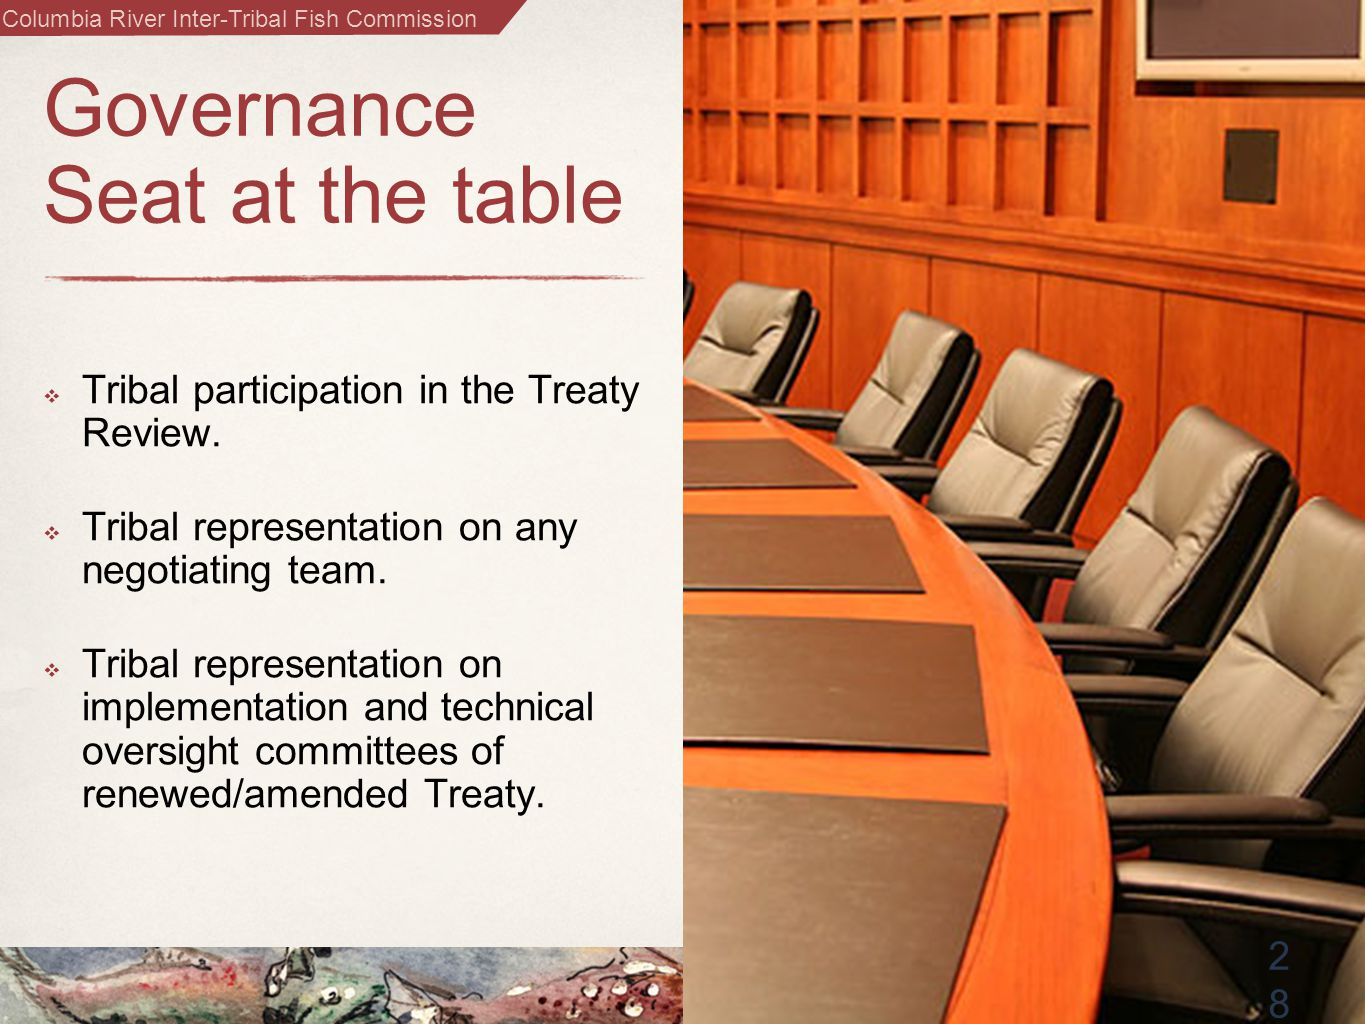 Columbia River Inter-Tribal Fish Commission 2828 Governance Seat at the table  Tribal participation in the Treaty Review.